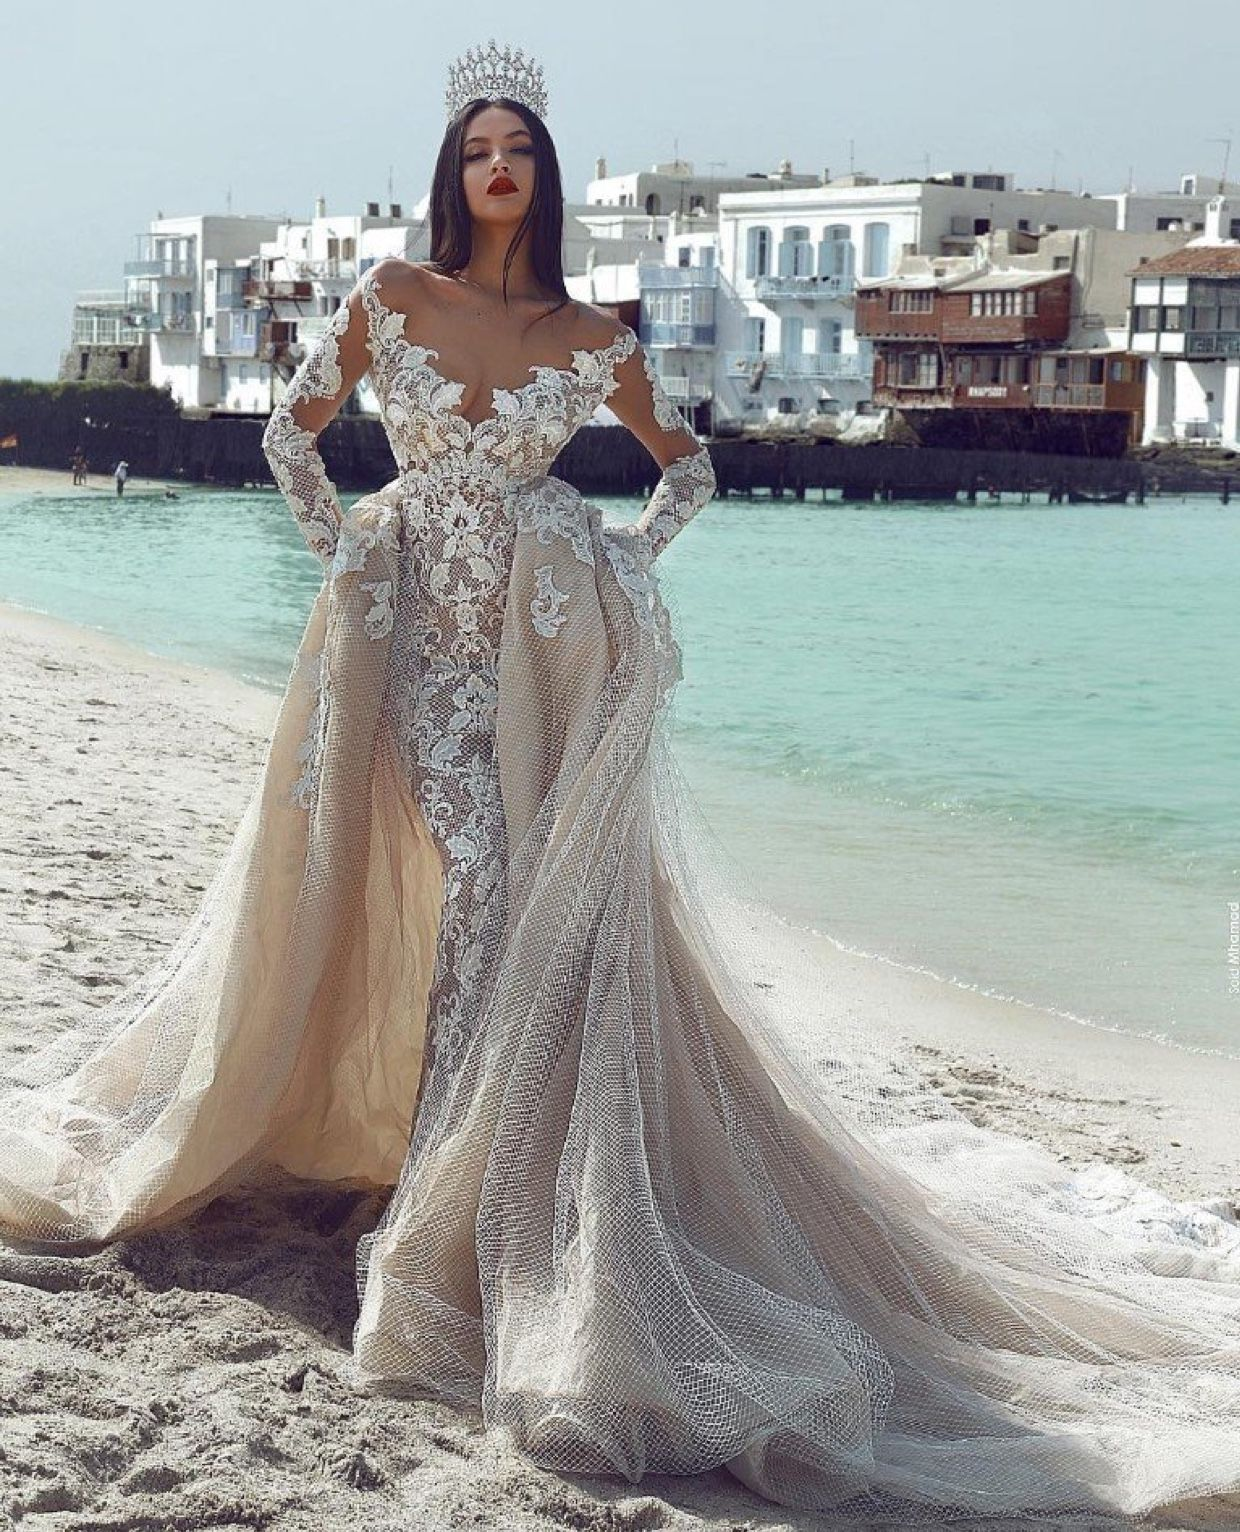 Pin by Jamaican Queen on EVENING / WEDDING GOWNS   Pinterest ...